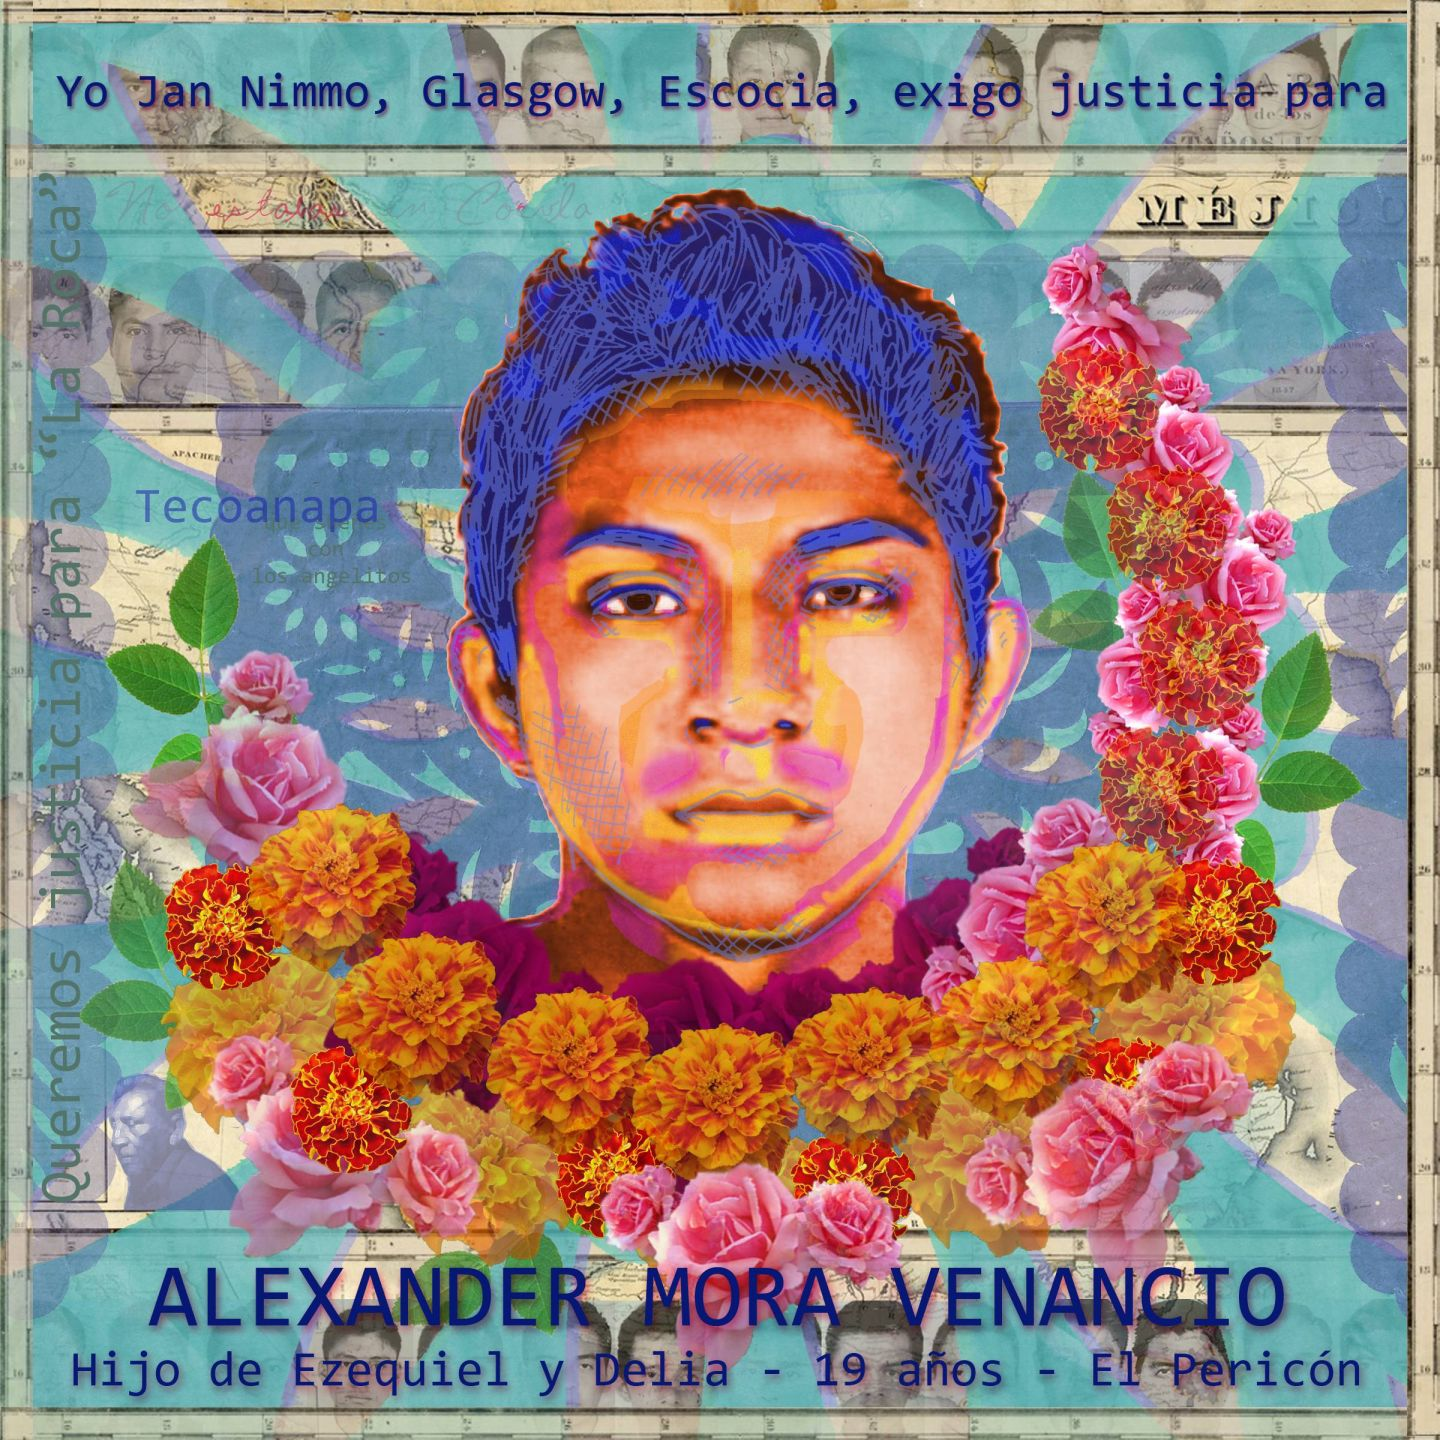 Portrait of Alexander Mora Venancio by Jan Nimo